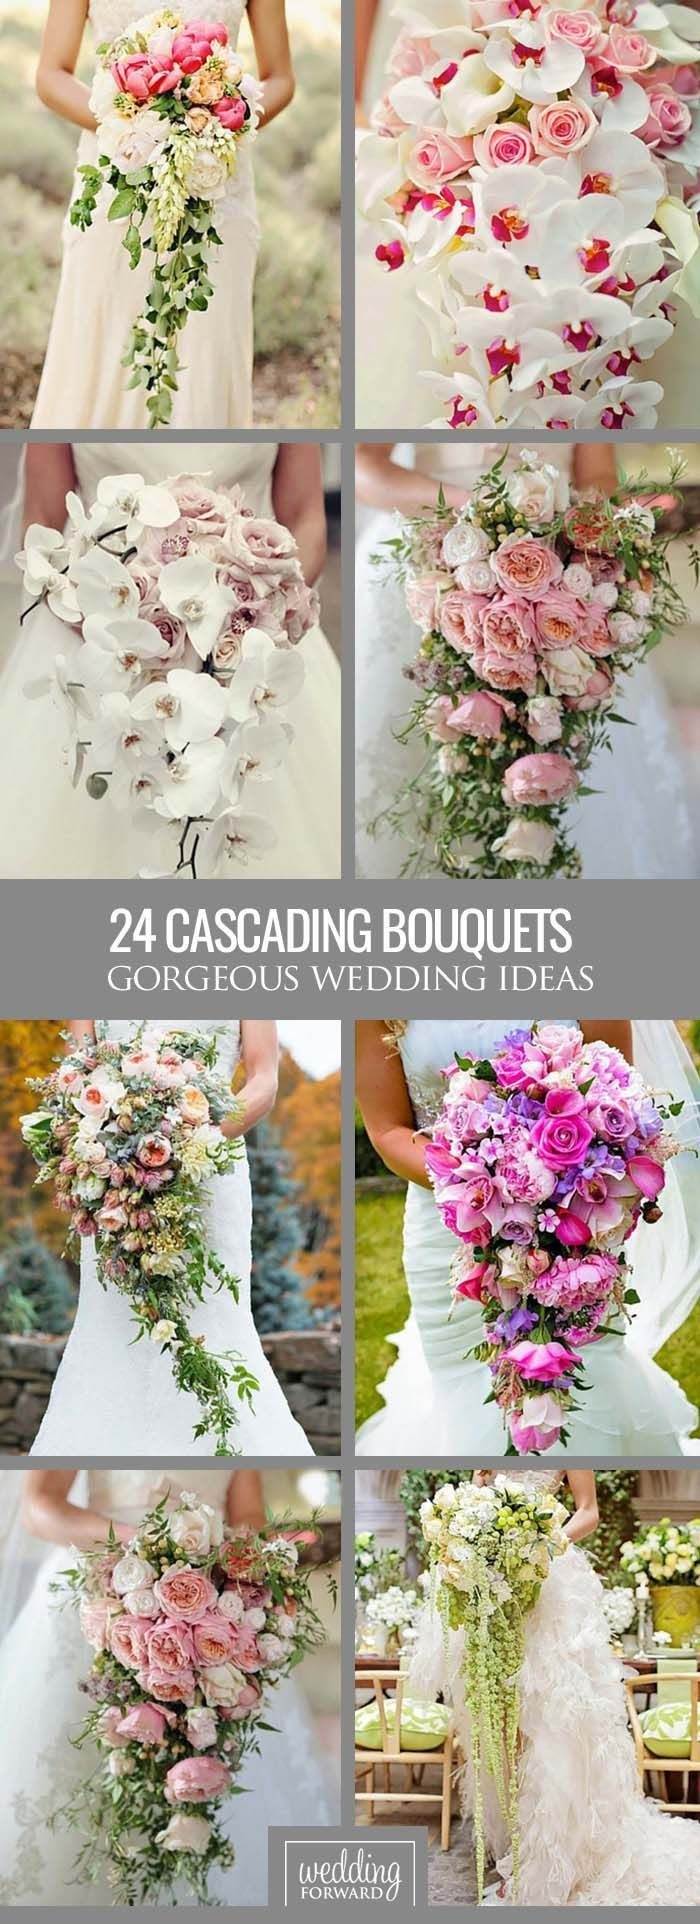 24 eiffel tower vases bulk of 166 best diamonds brides images on pinterest weddings perfect throughout 24 gorgeous cascading wedding bouquets a¤ modern cascading or pageant bouquets are different from traditional round bouquets and look stunning with